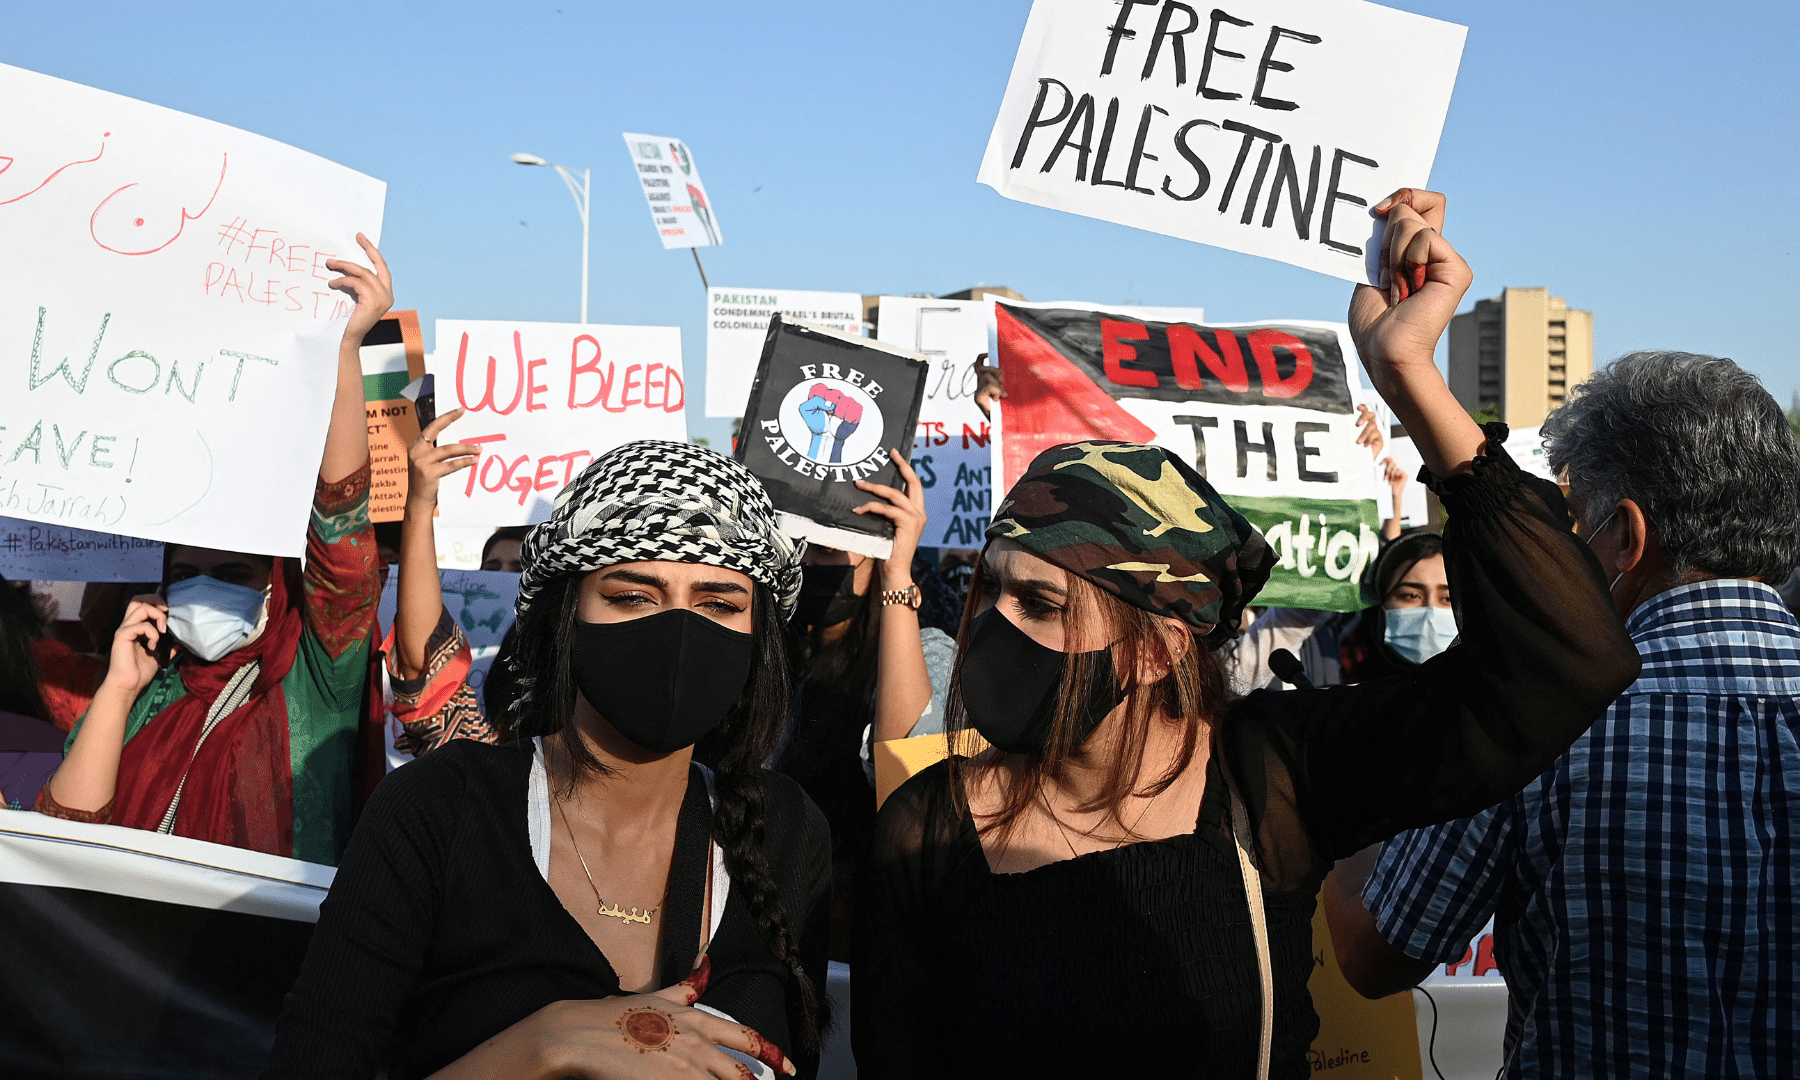 Protesters carry placards and chant slogans as they take part in a demonstration in support of Palestine during an anti-Israel protest rally in Islamabad. — AFP